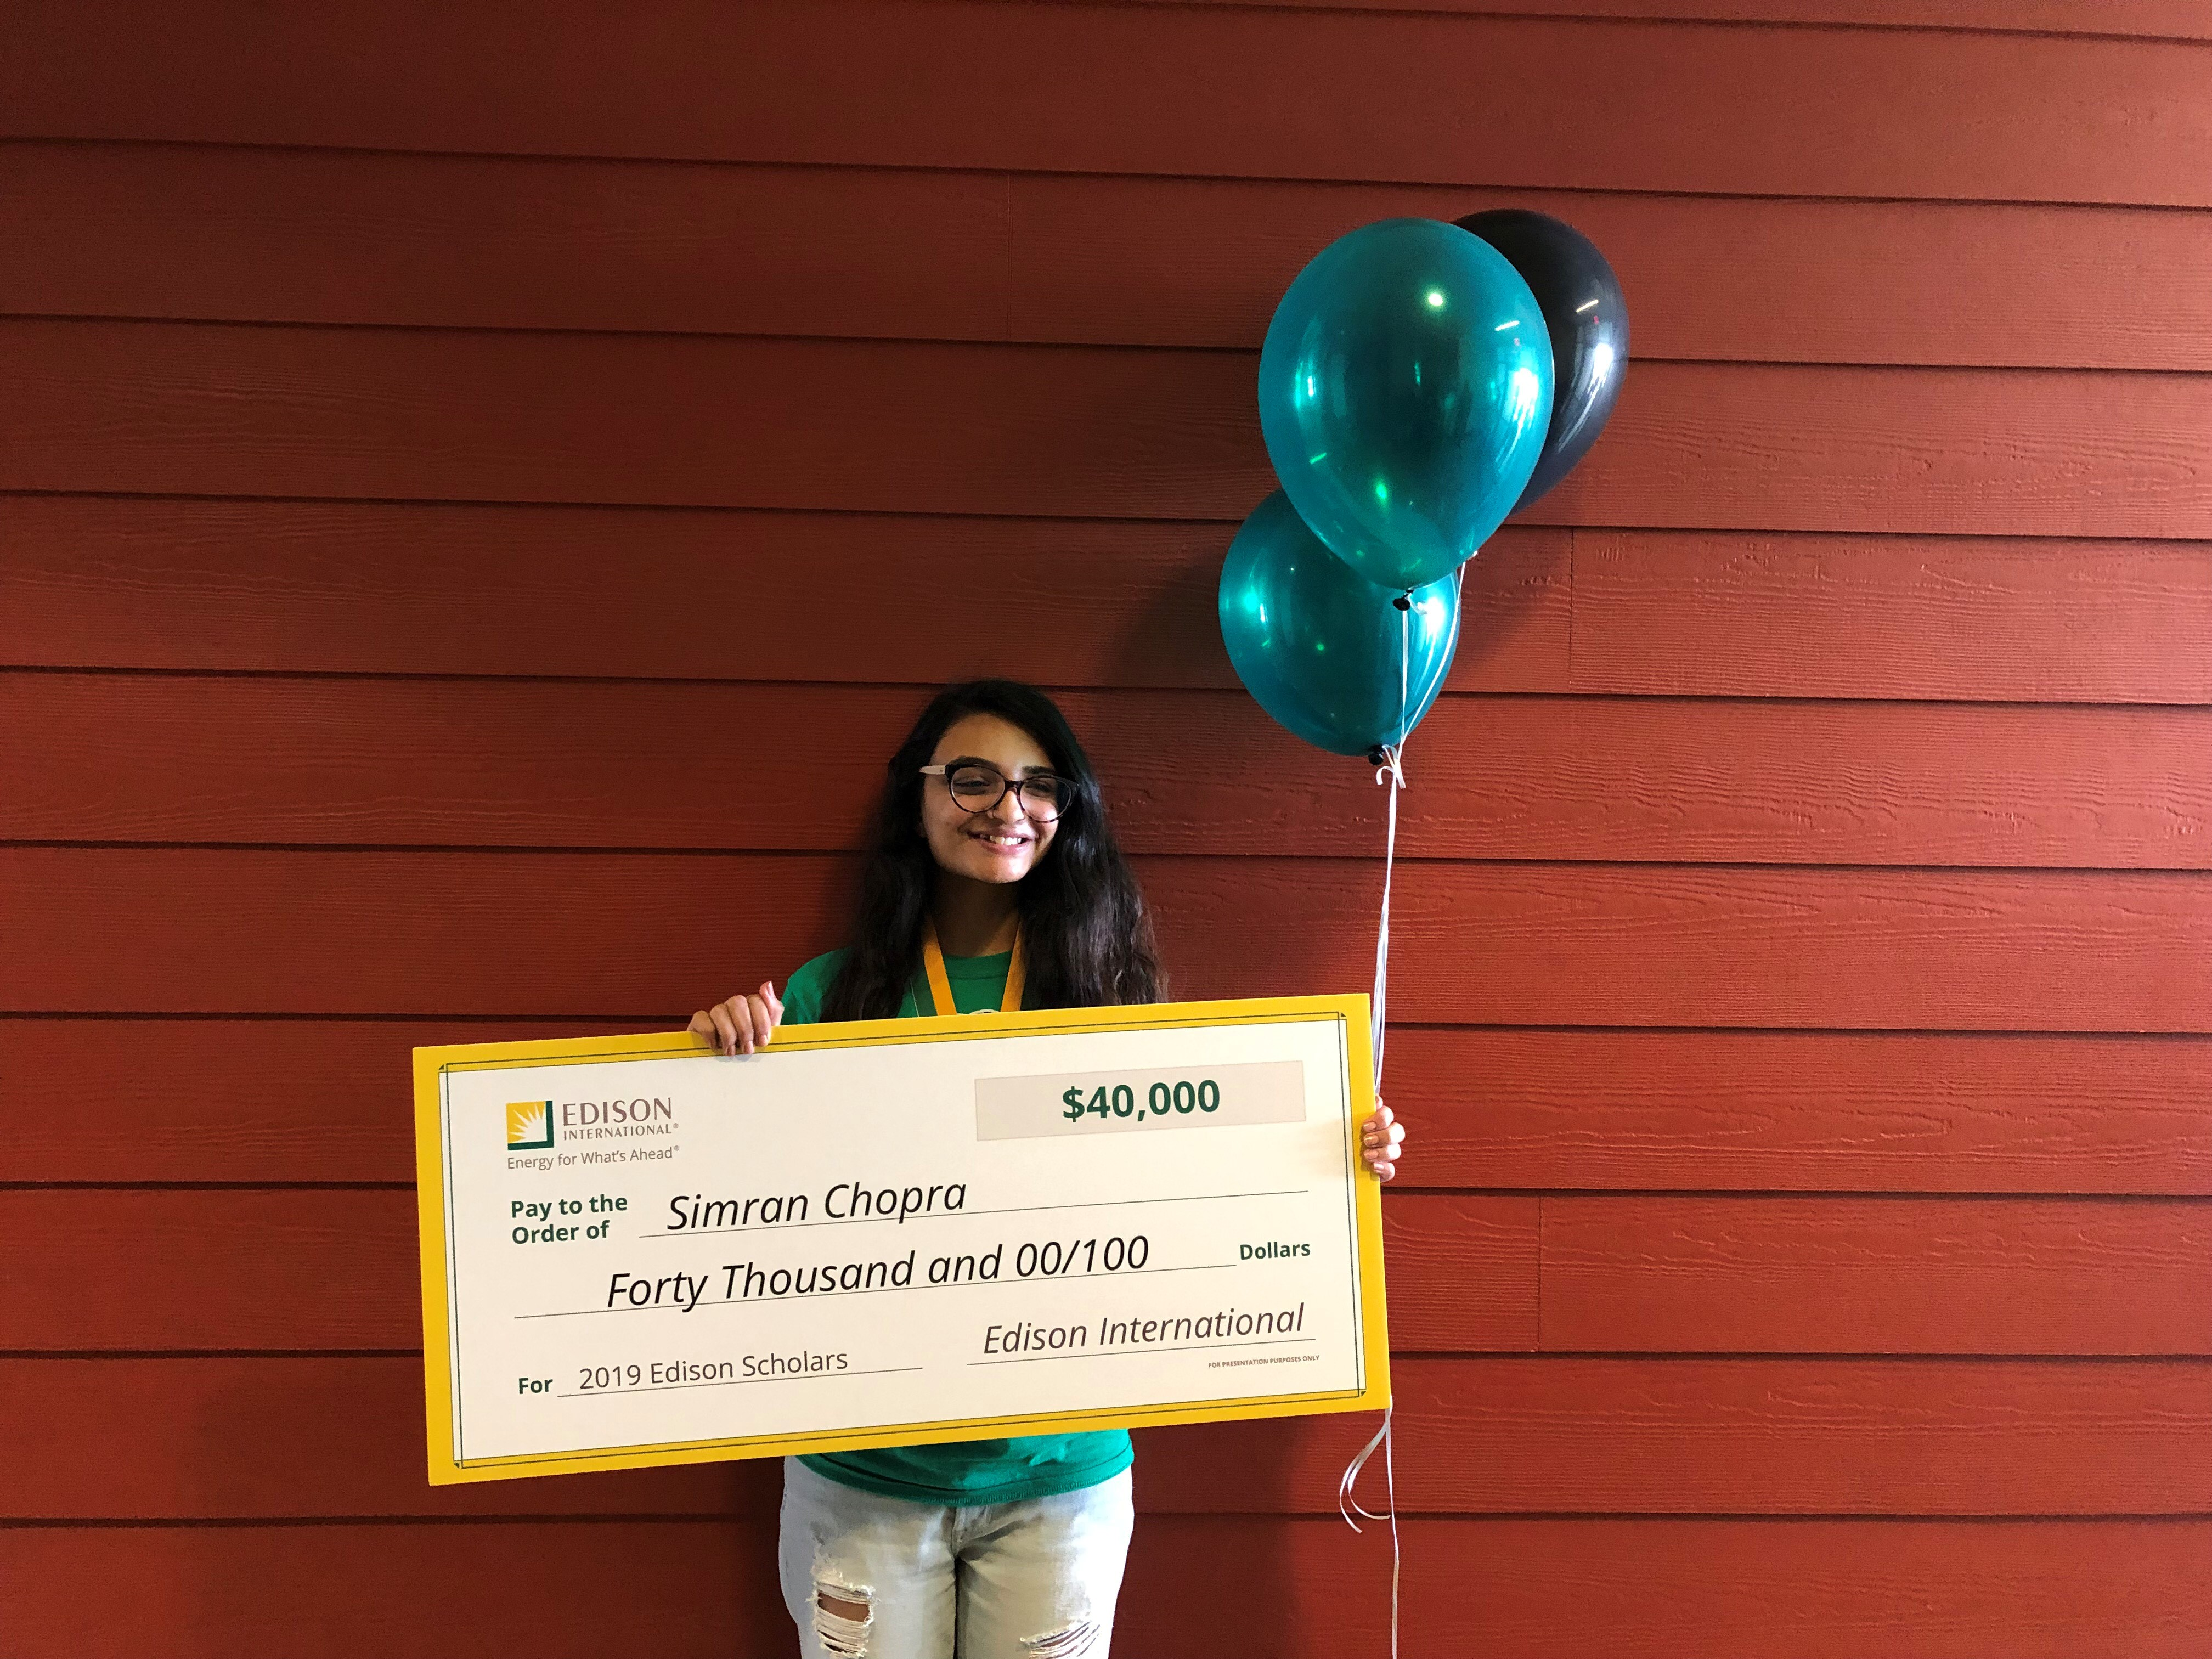 2019 Edison Scholar Simran Chopra at Nogales High School